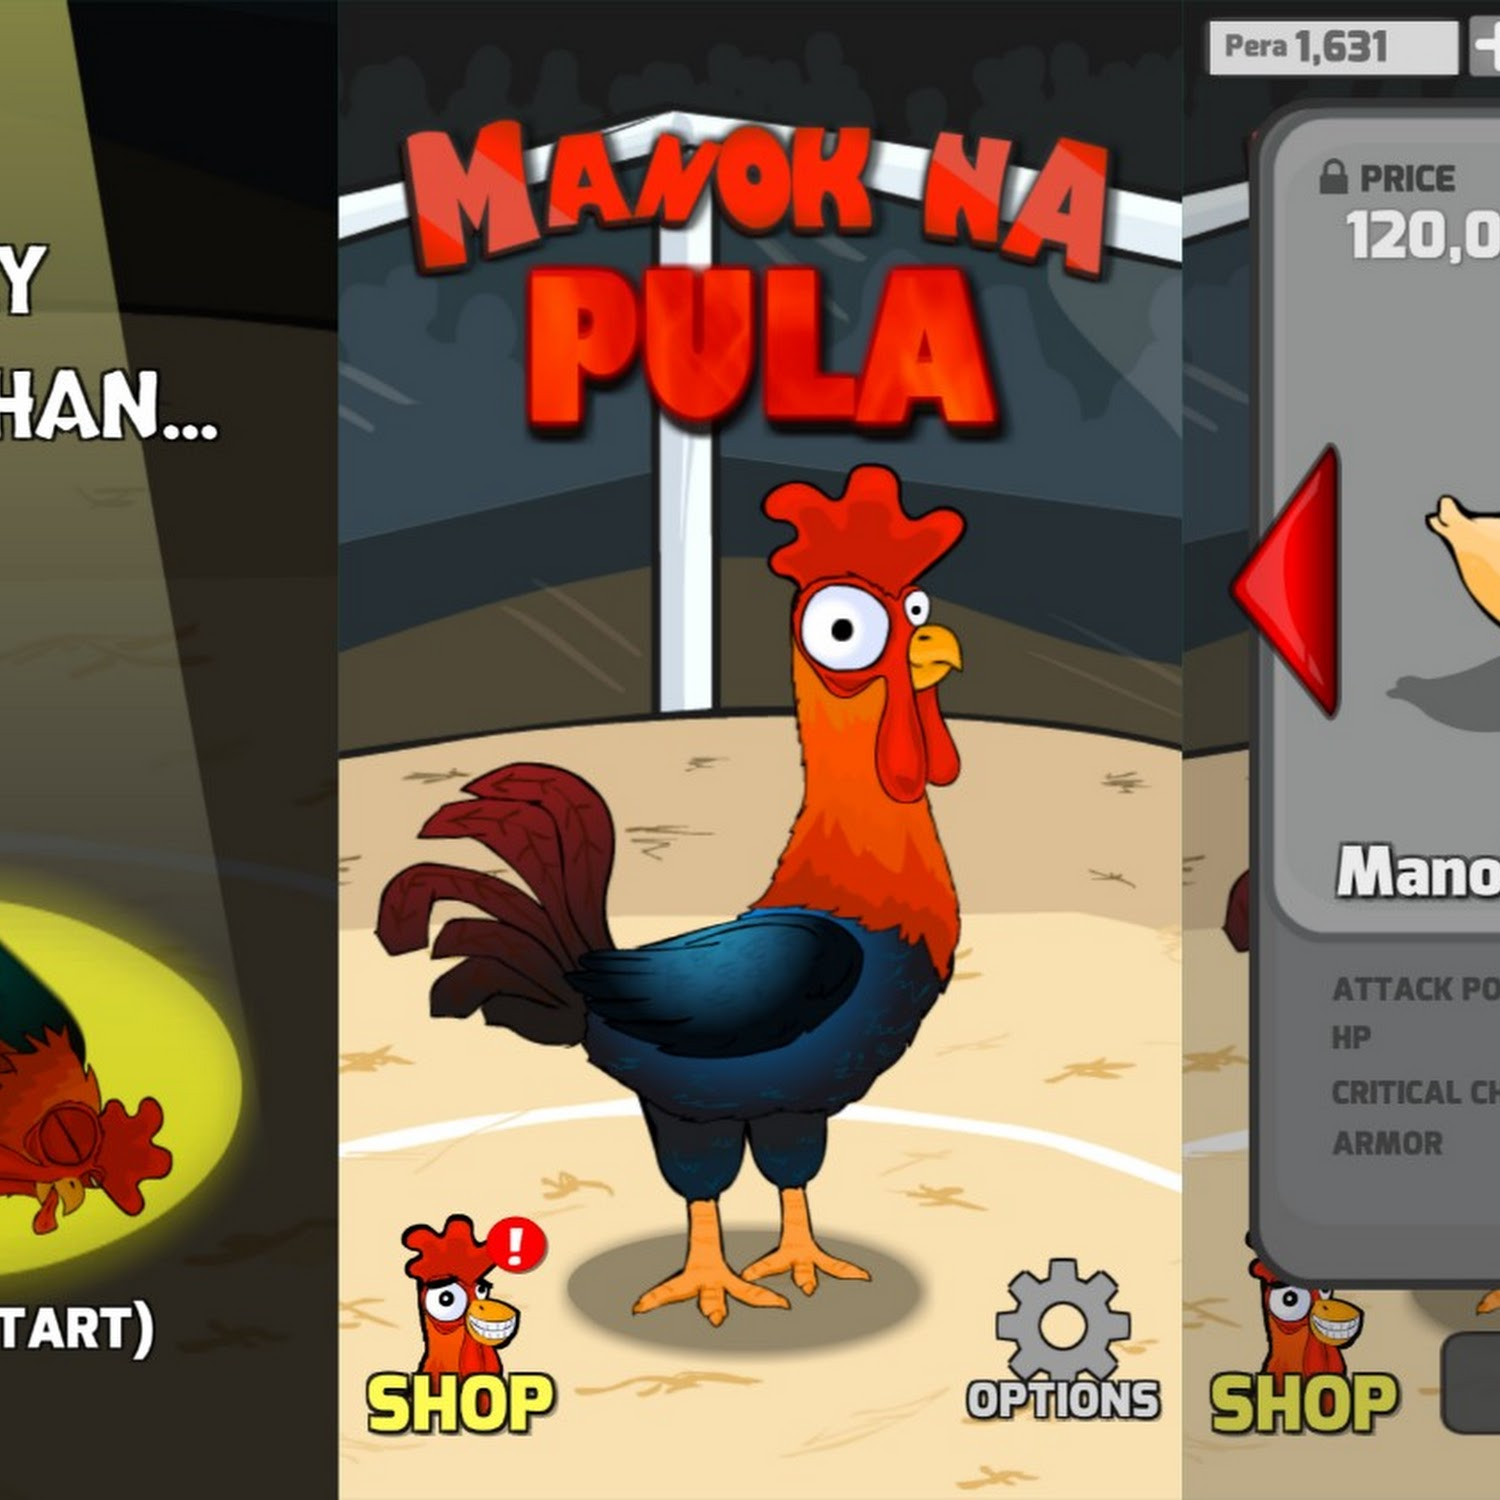 Manok Na Pula by Tatay Games: Download App Sabungan Game